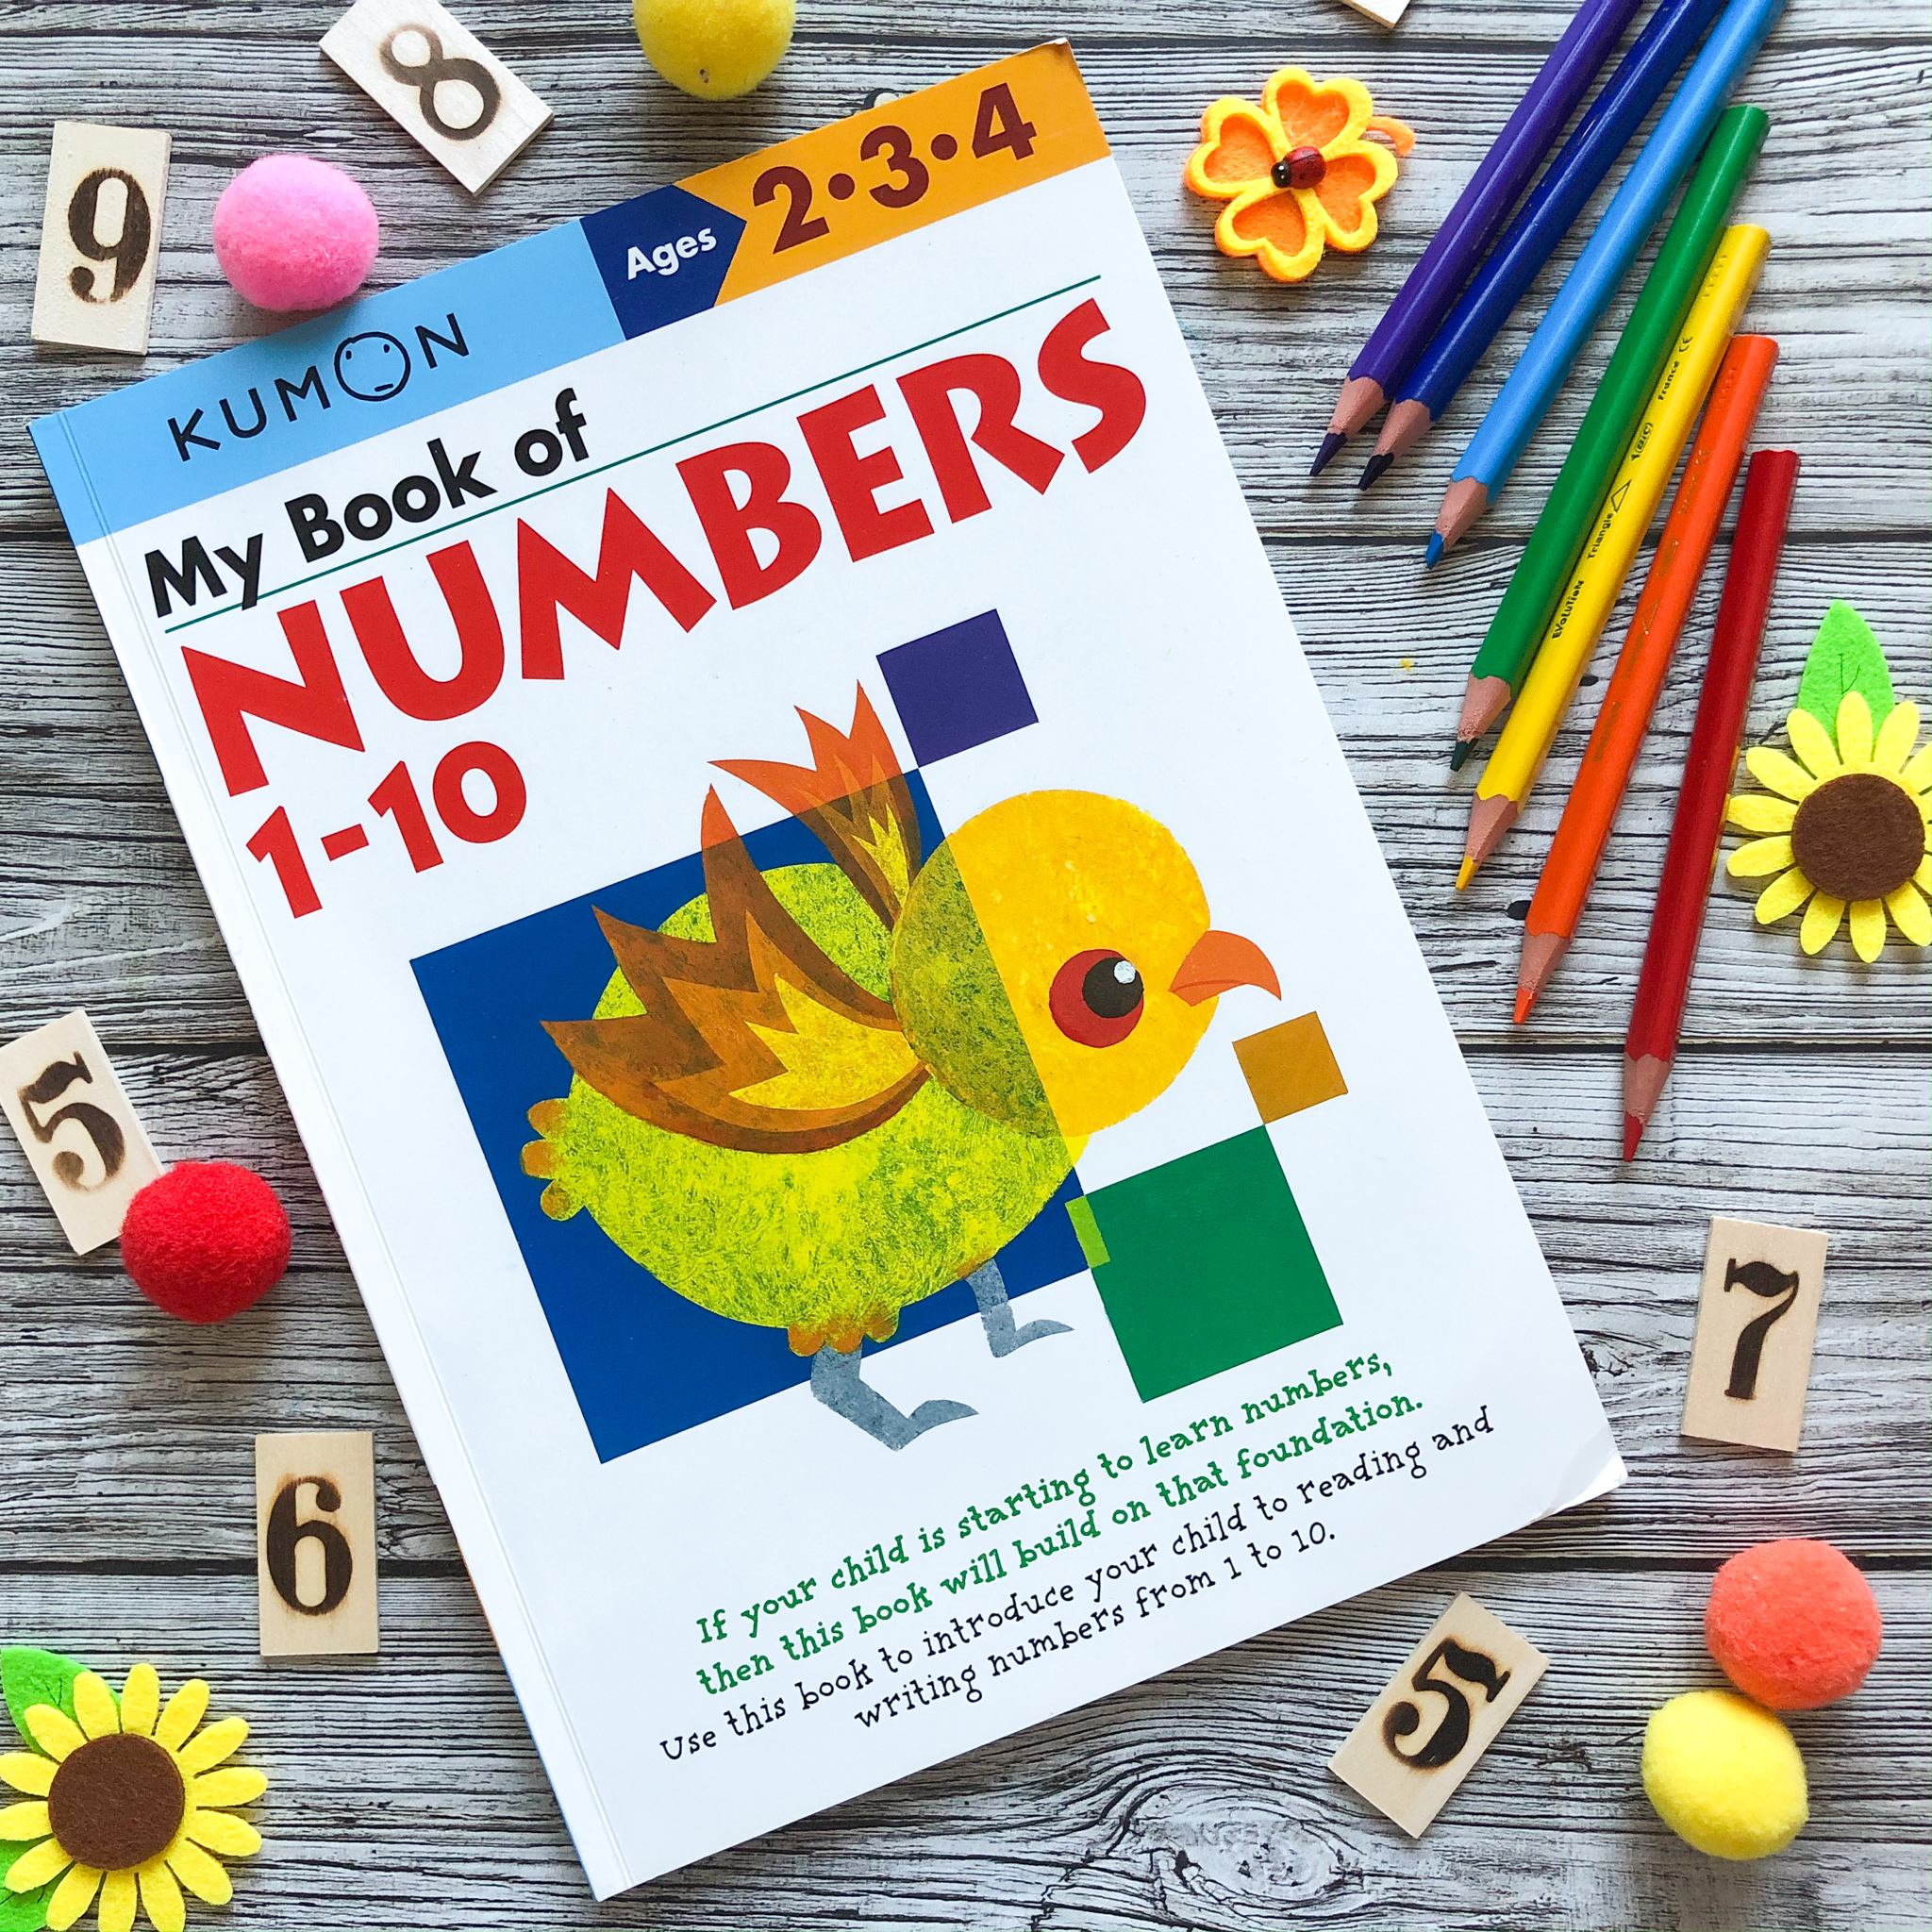 My Book of Numbers 1-10, 2-4 1